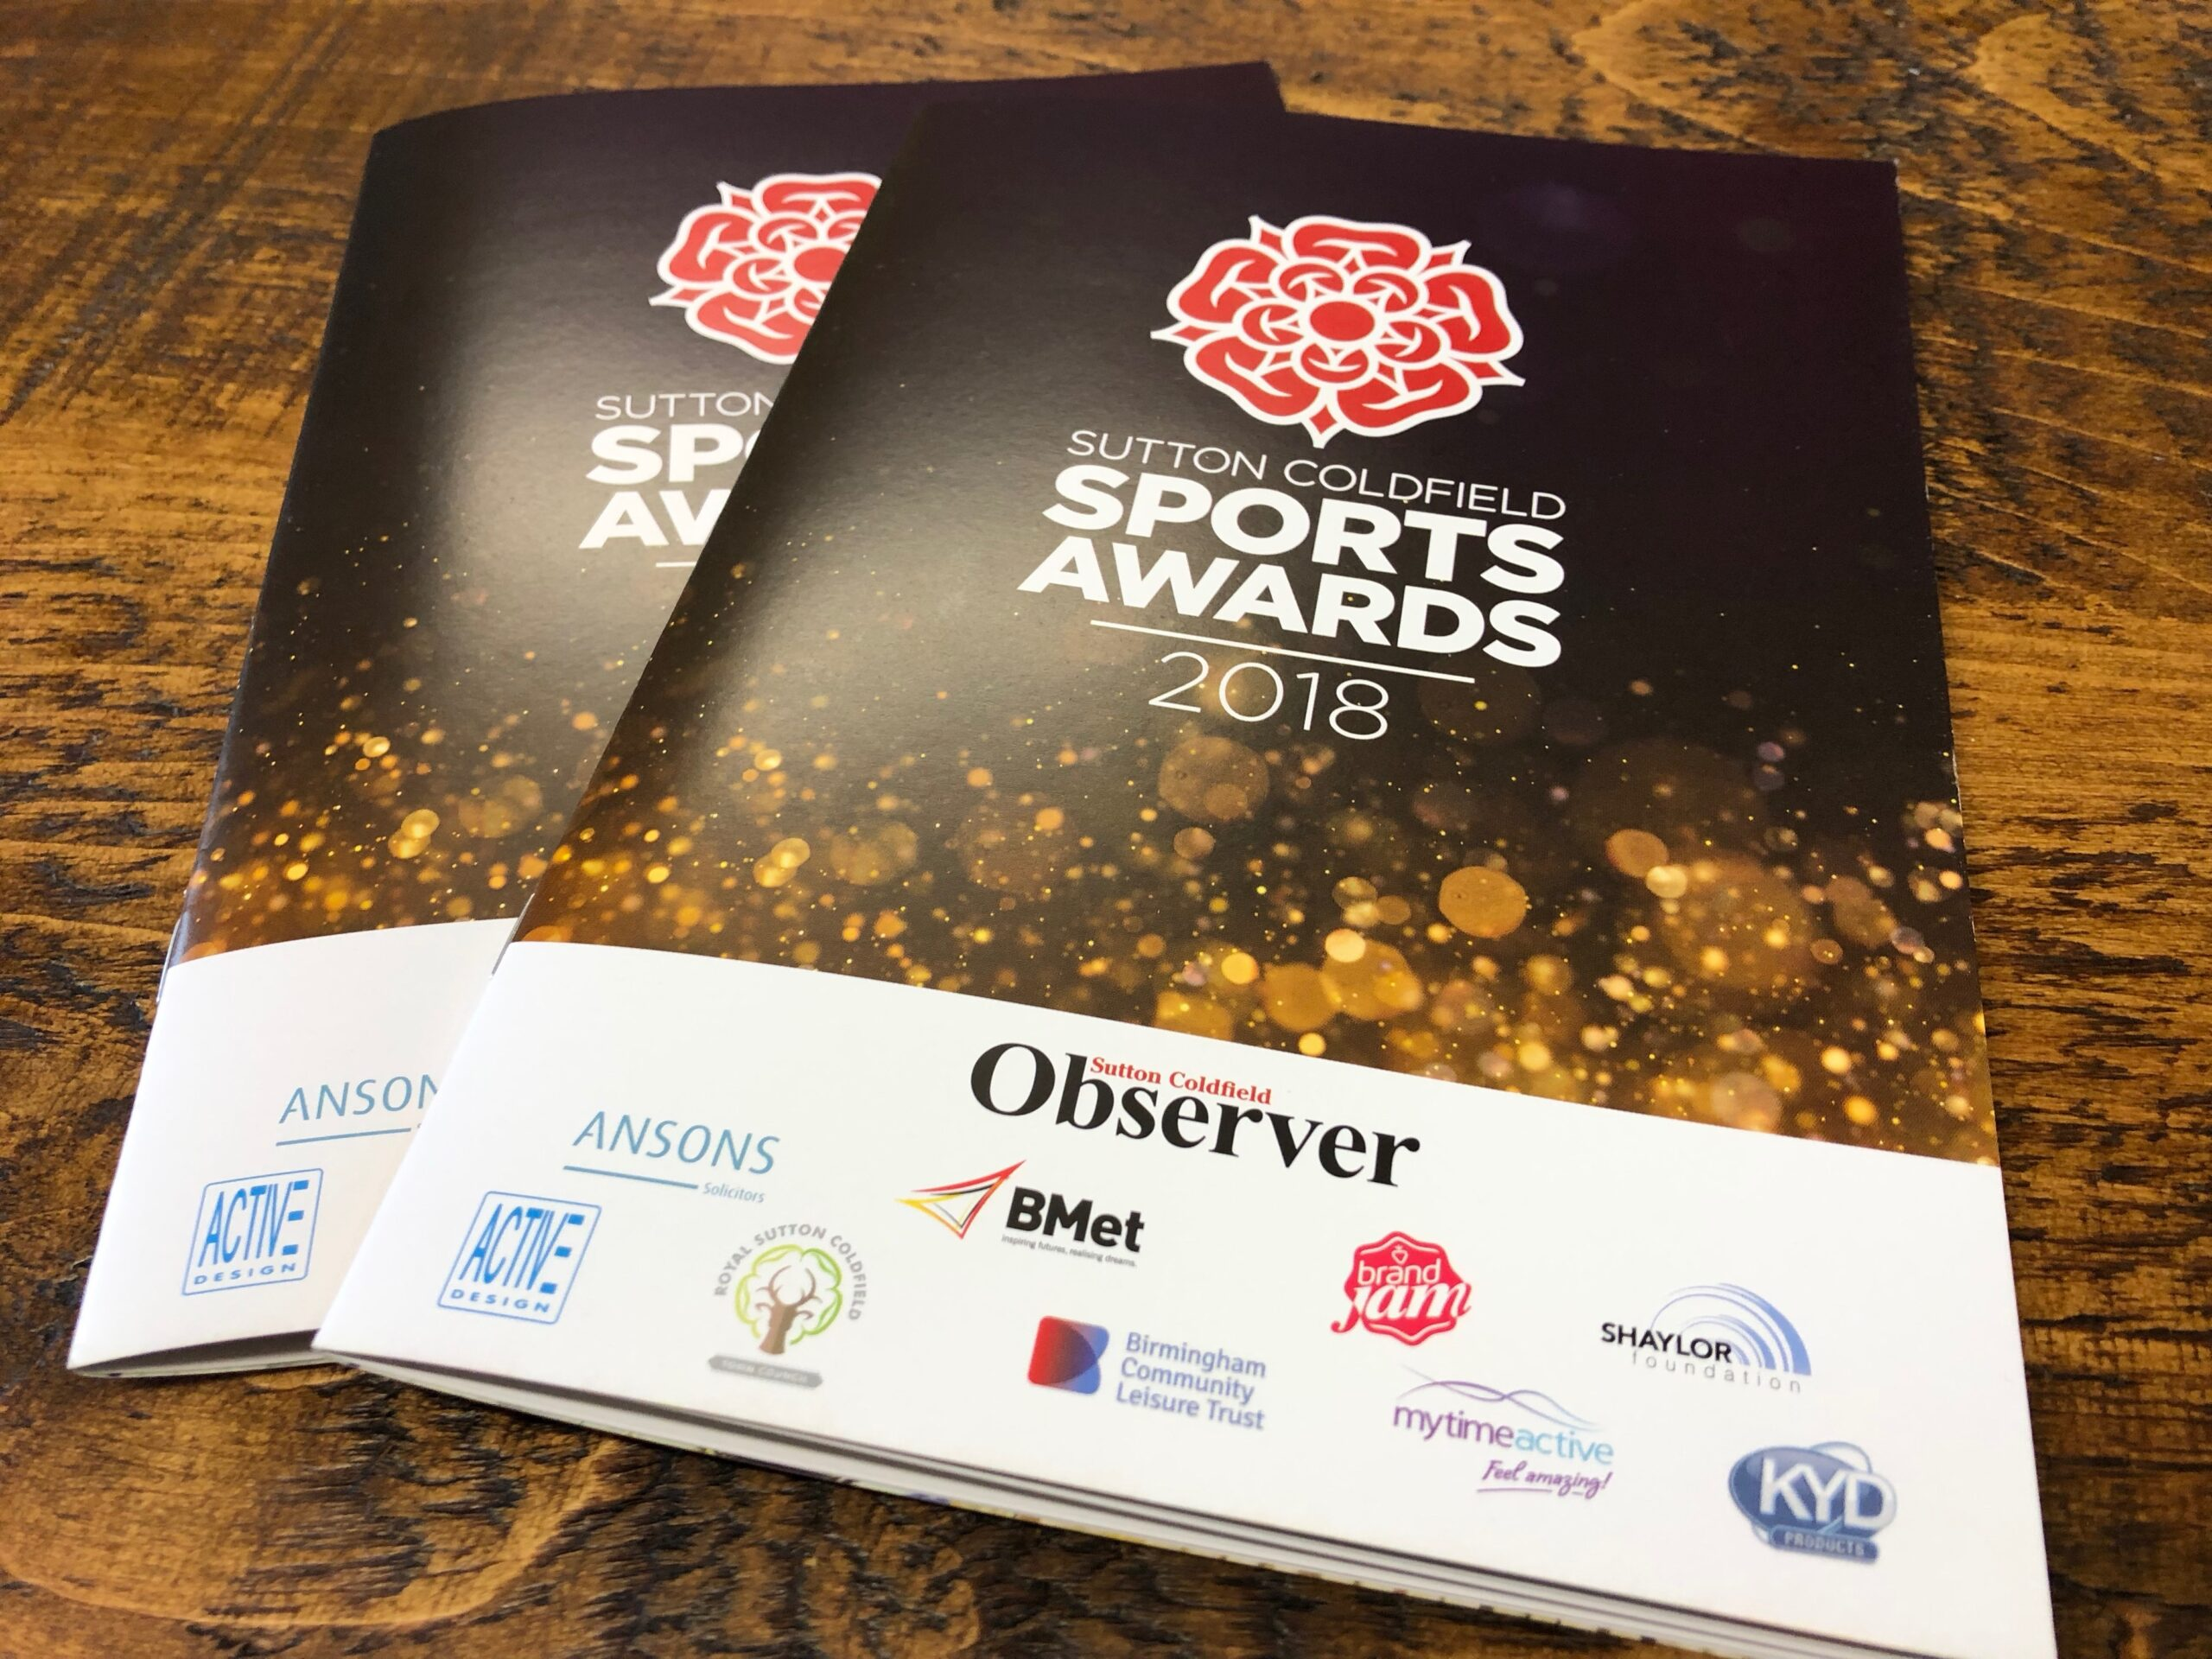 Sutton Coldfield 2018 Sports Award Programme designed by Brand Jam Limited